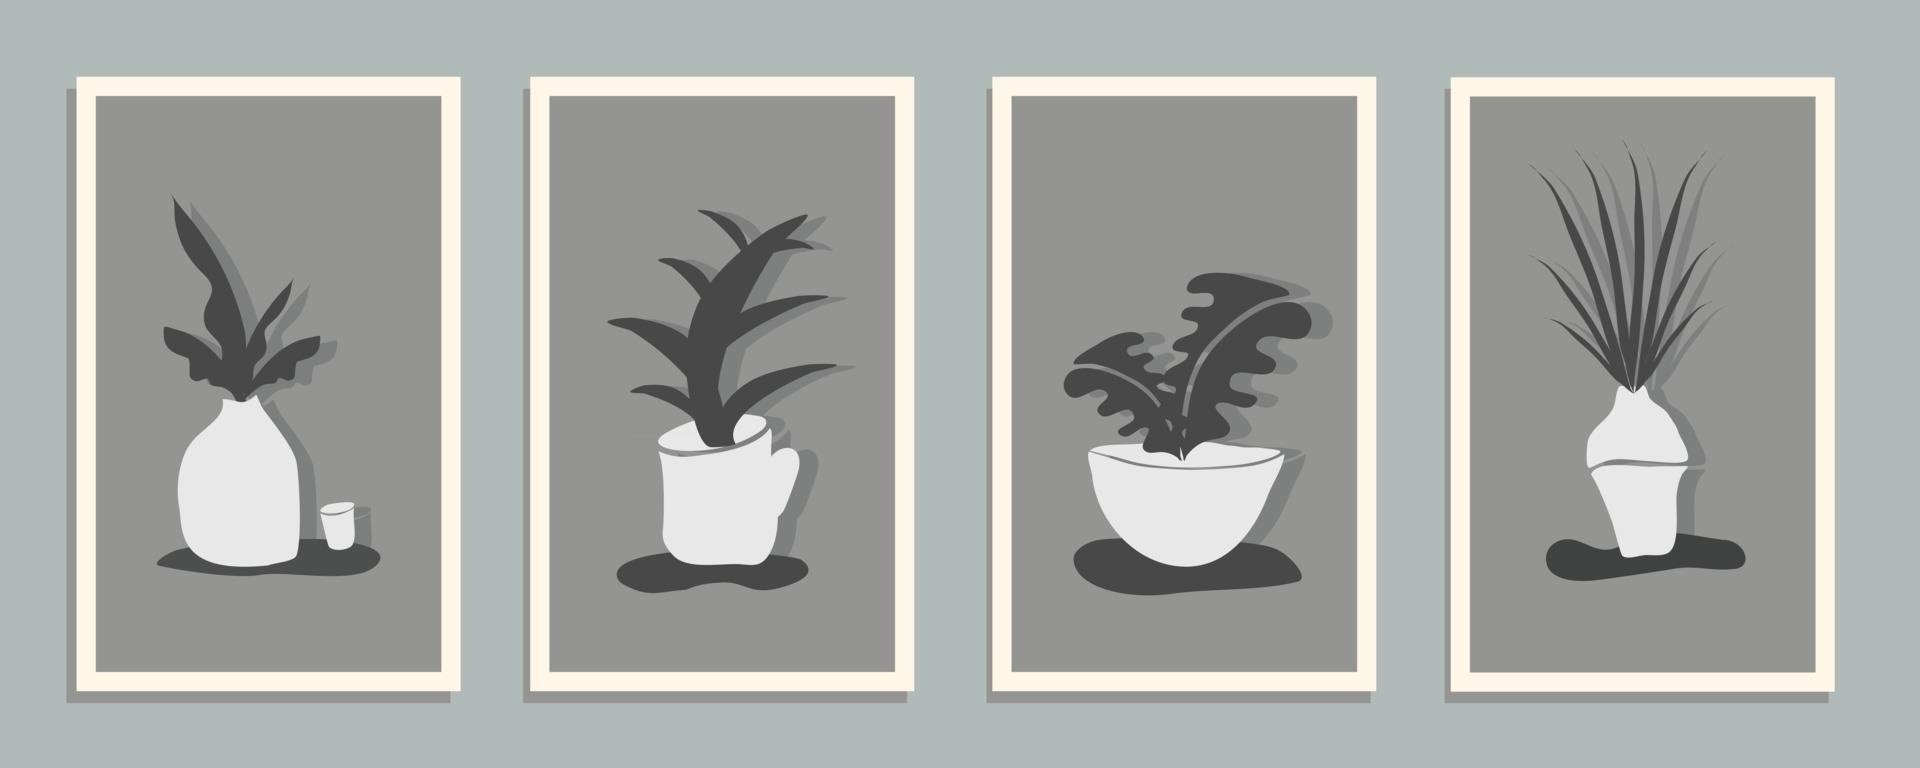 Set of Abstract still life in monochrome colors posters. Collection of contemporary art. Abstract elements, leaves, plant, botanical, flower for social media, postcards, print. vector